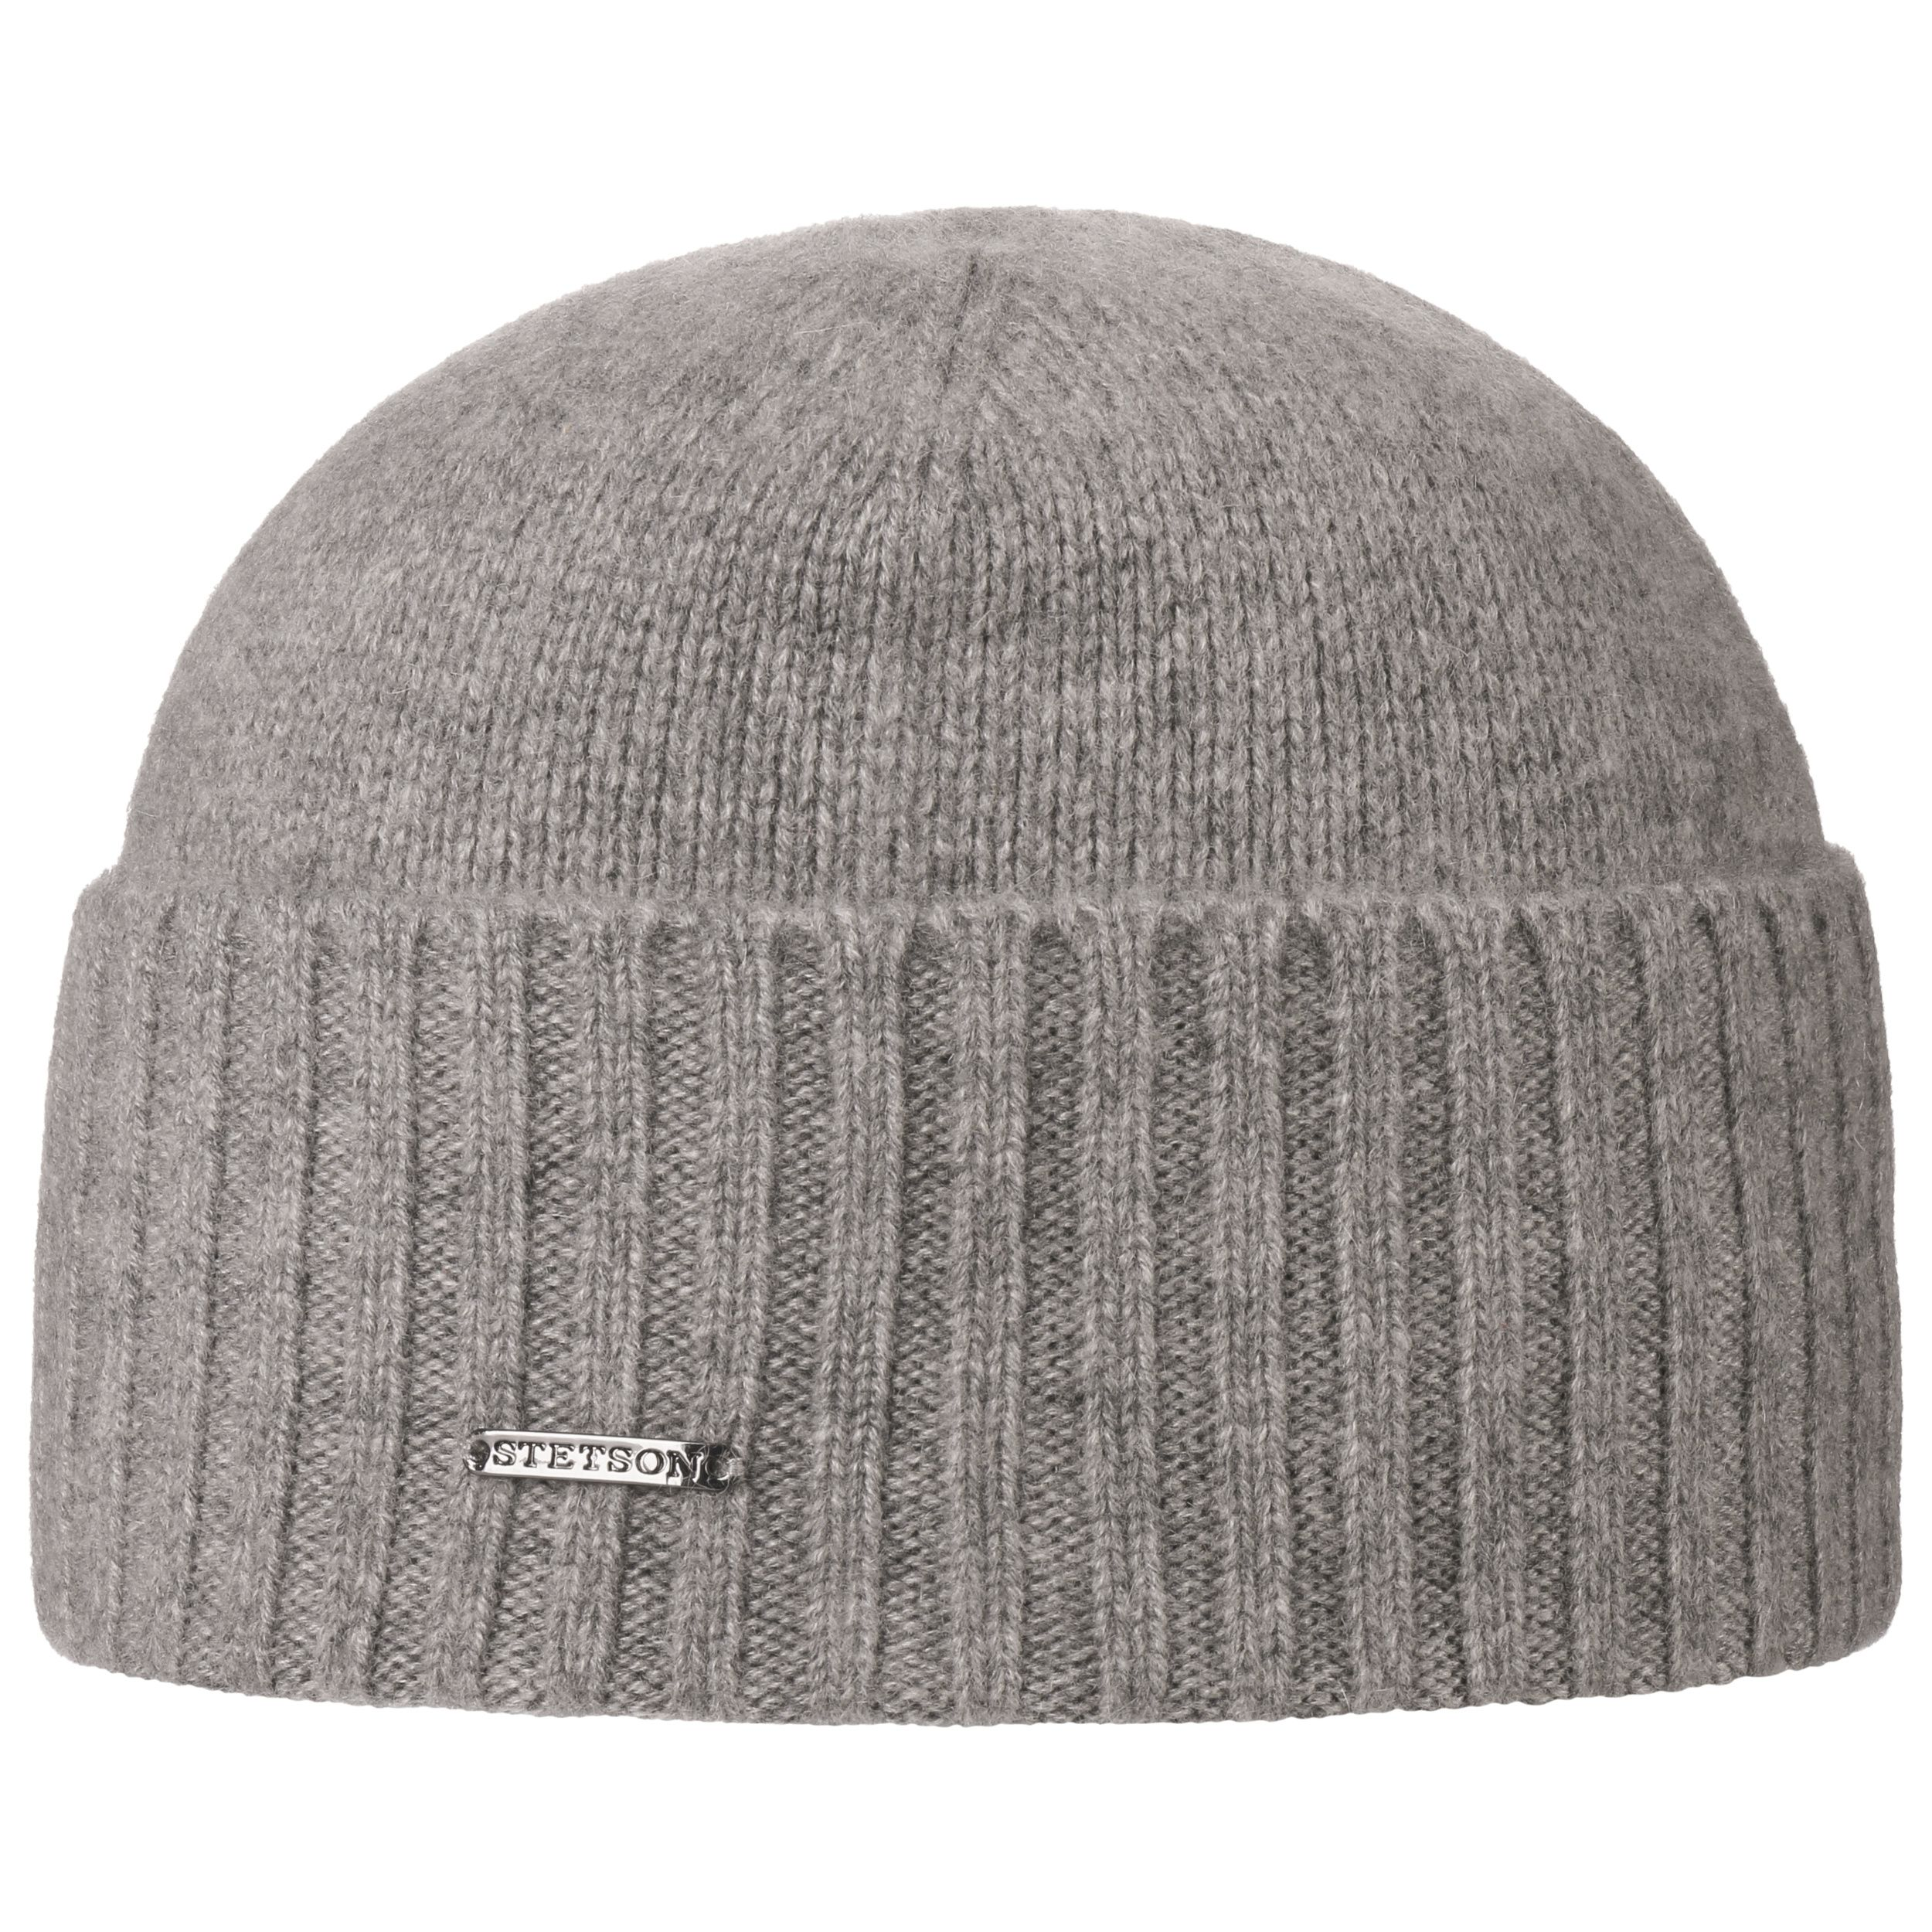 Saratoga Cashmere Pull on Hat light grey